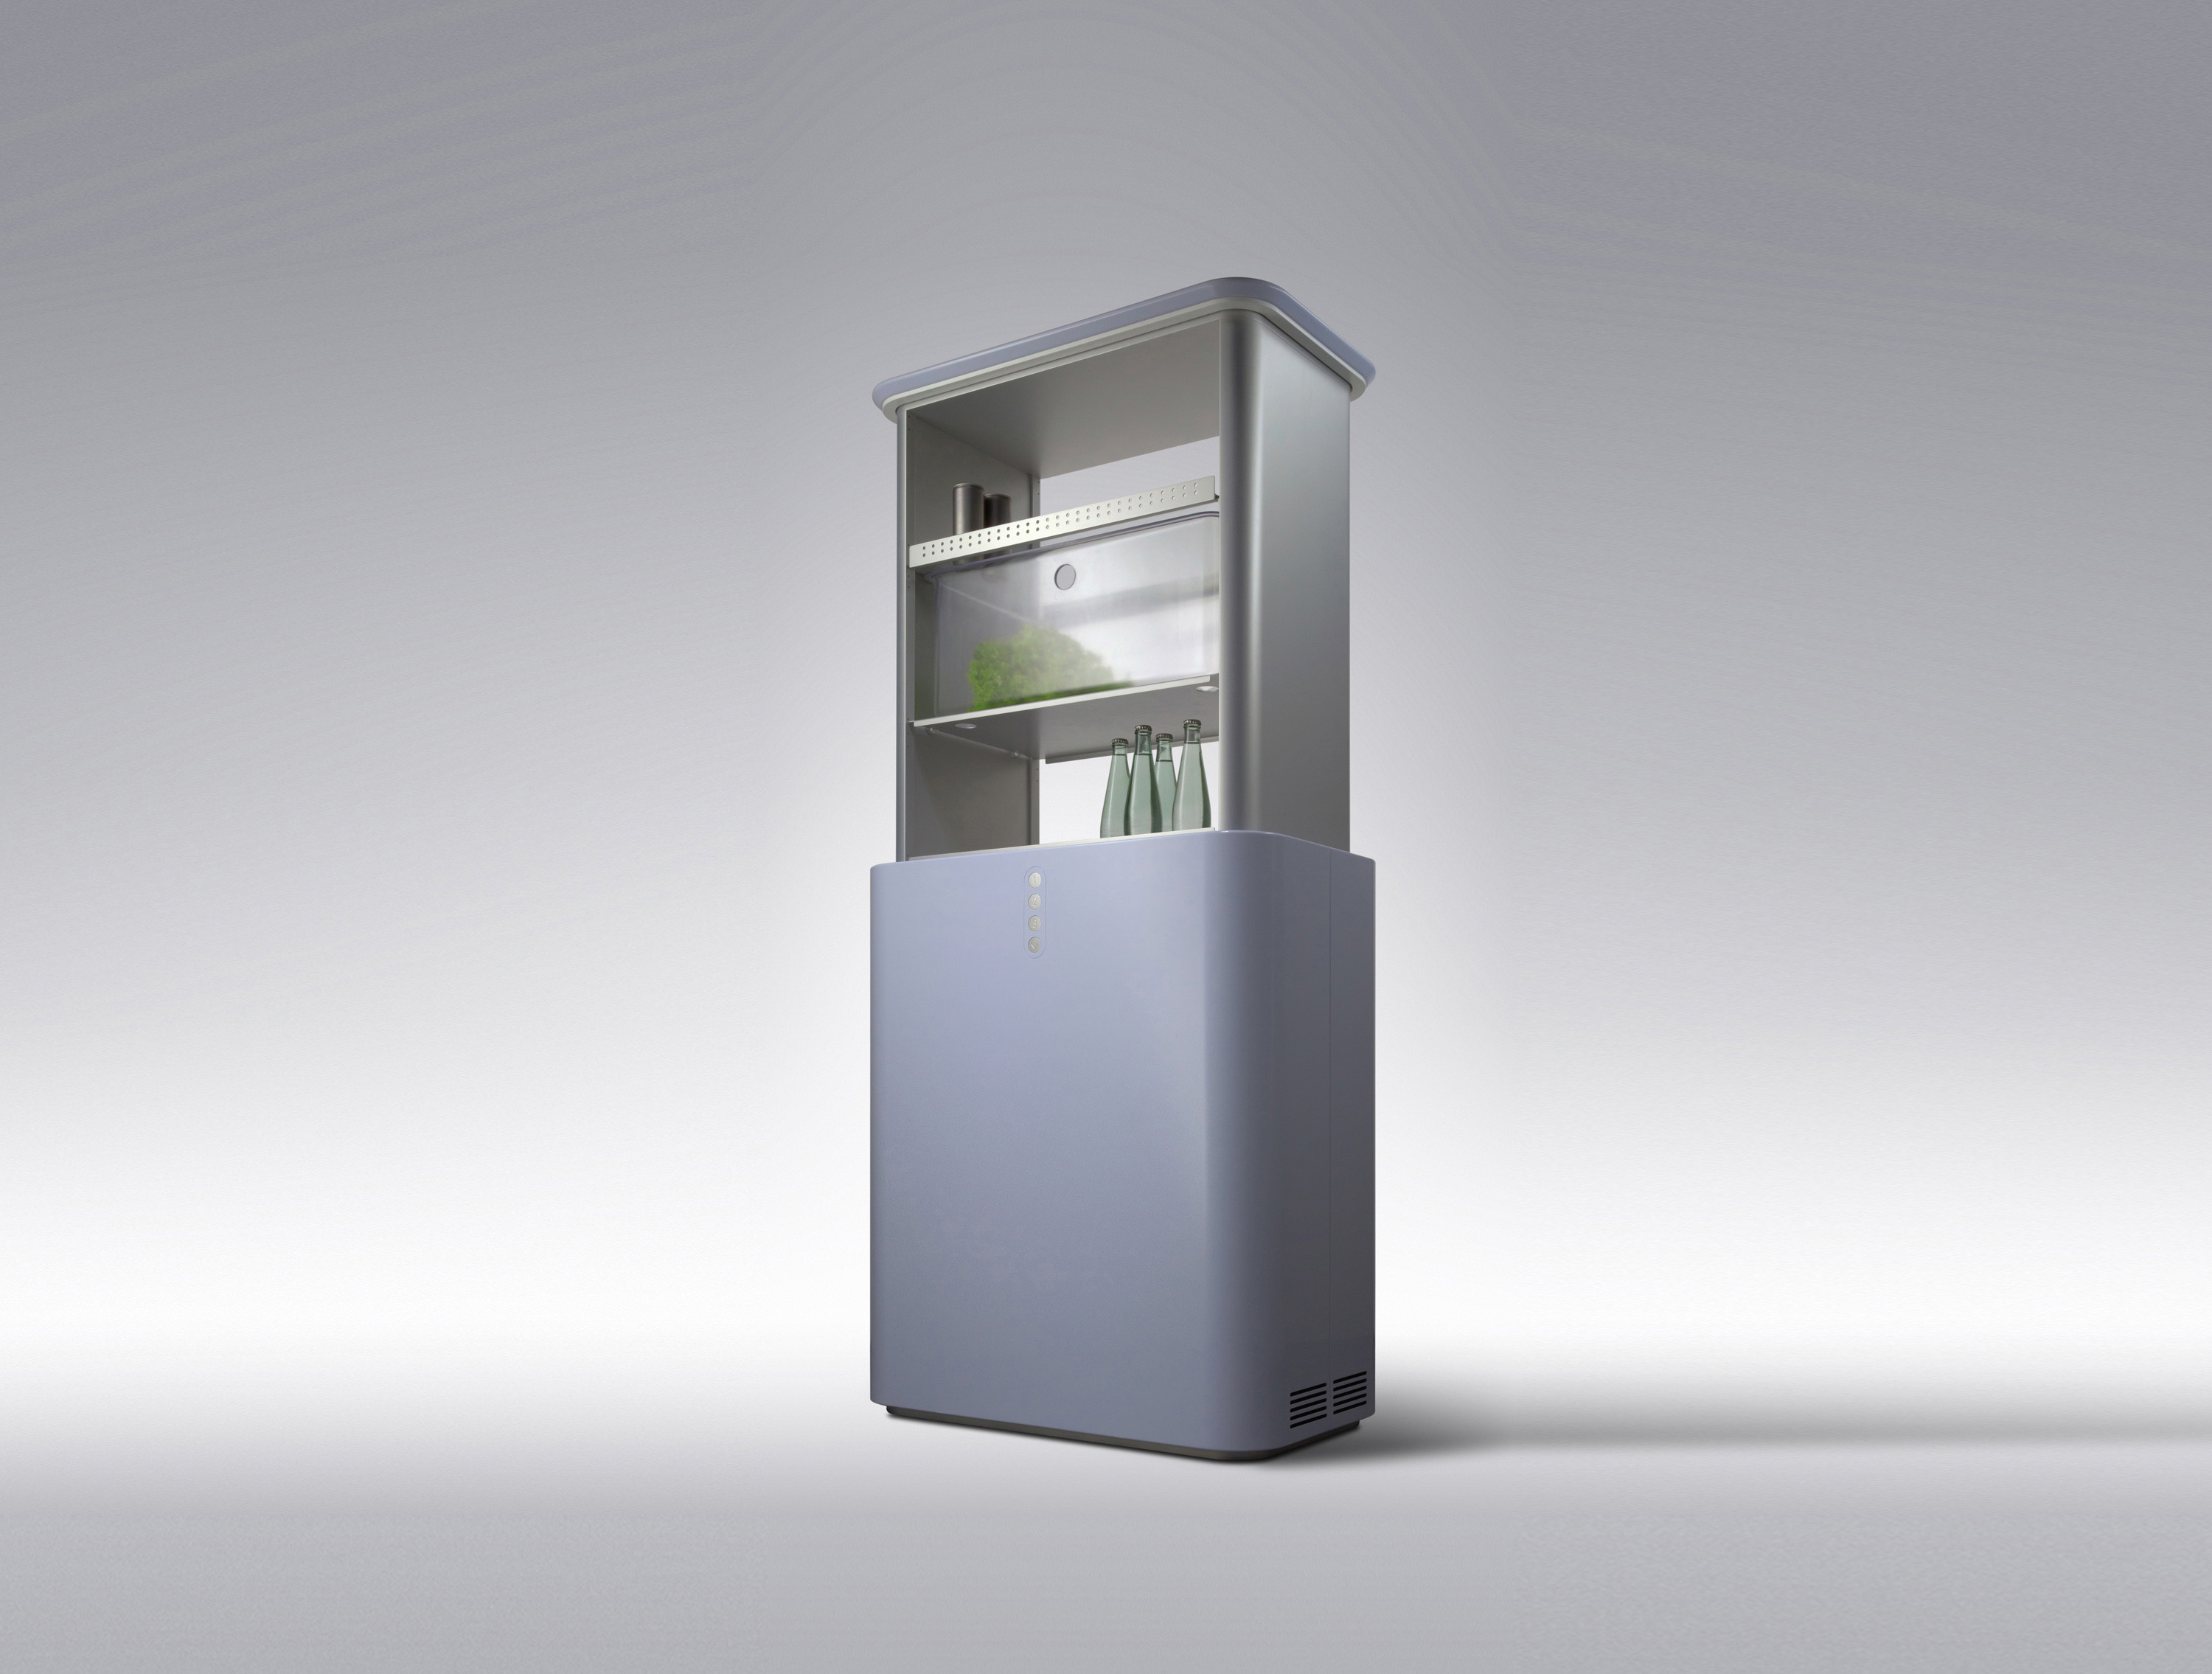 Bosch Kühlschrank Garantie : Barski design bosch home up and down